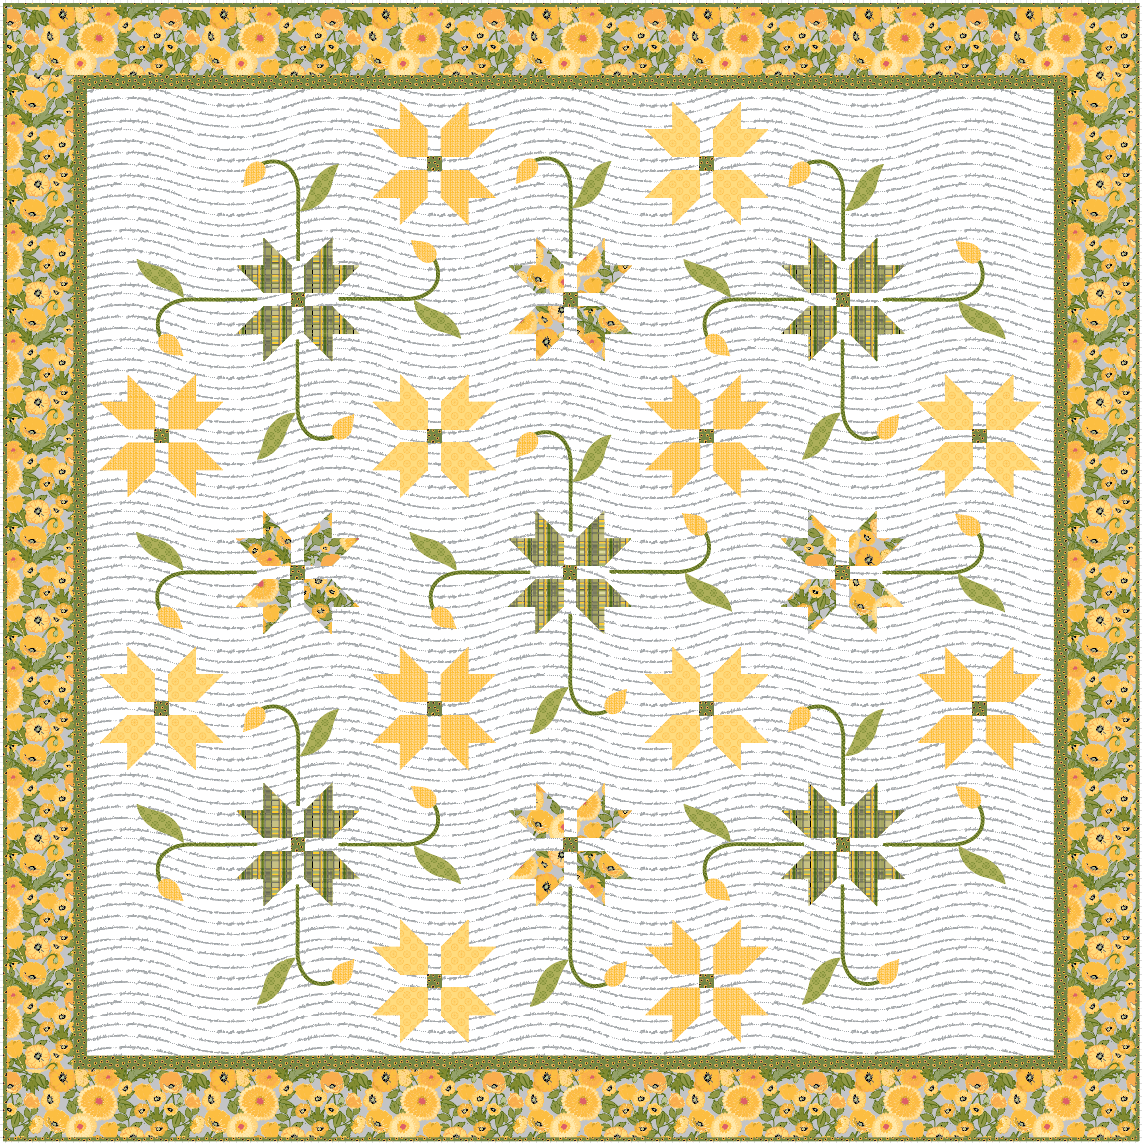 PREORDER Meadowland Quilt Kit - Two Colorways!